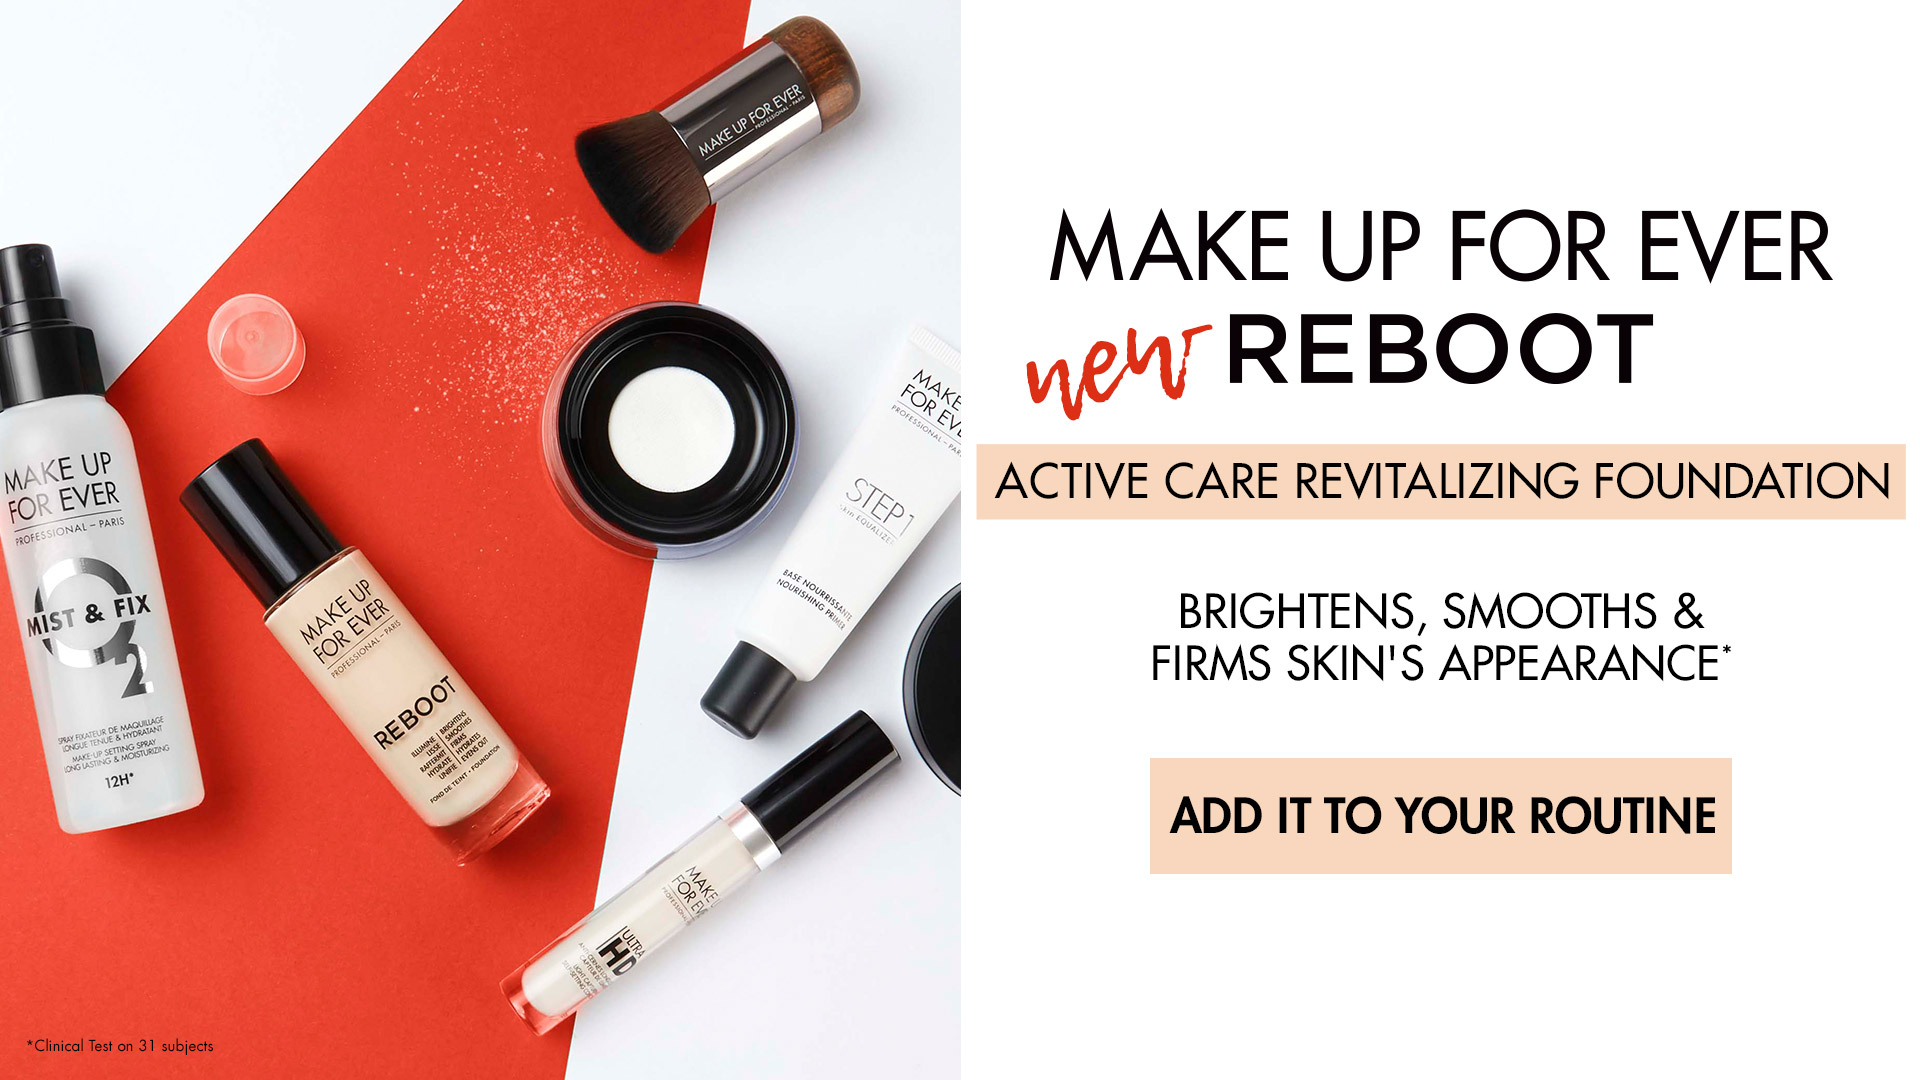 Make Up For Ever Reboot - ACTIVE CARE REVITALIZING FOUNDATION, A light-to-medium coverage, skin-revitalizing foundation that adds a radiant, satin finish while hydrating, smoothing and firming the skin for 24 hours.